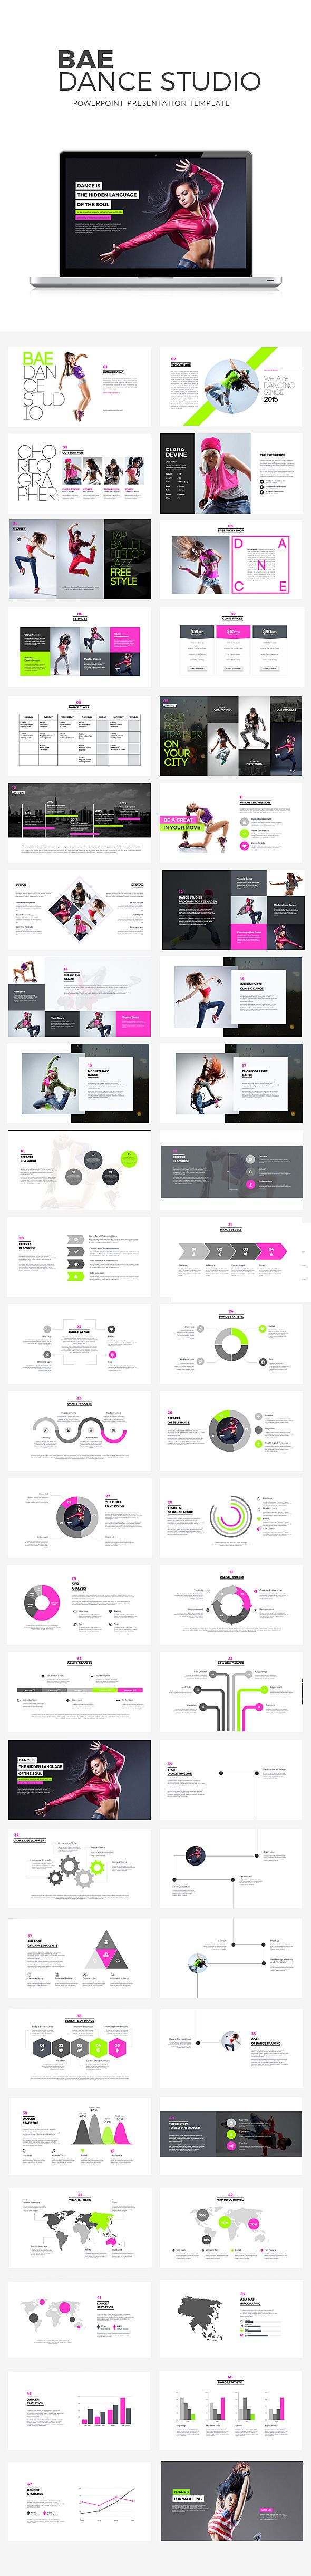 Bae Dance Powerpoint Presentation Template #design Download: http://graphicriver.net/item/bae-dance-powerpoint-presentation/11812983?ref=ksioks